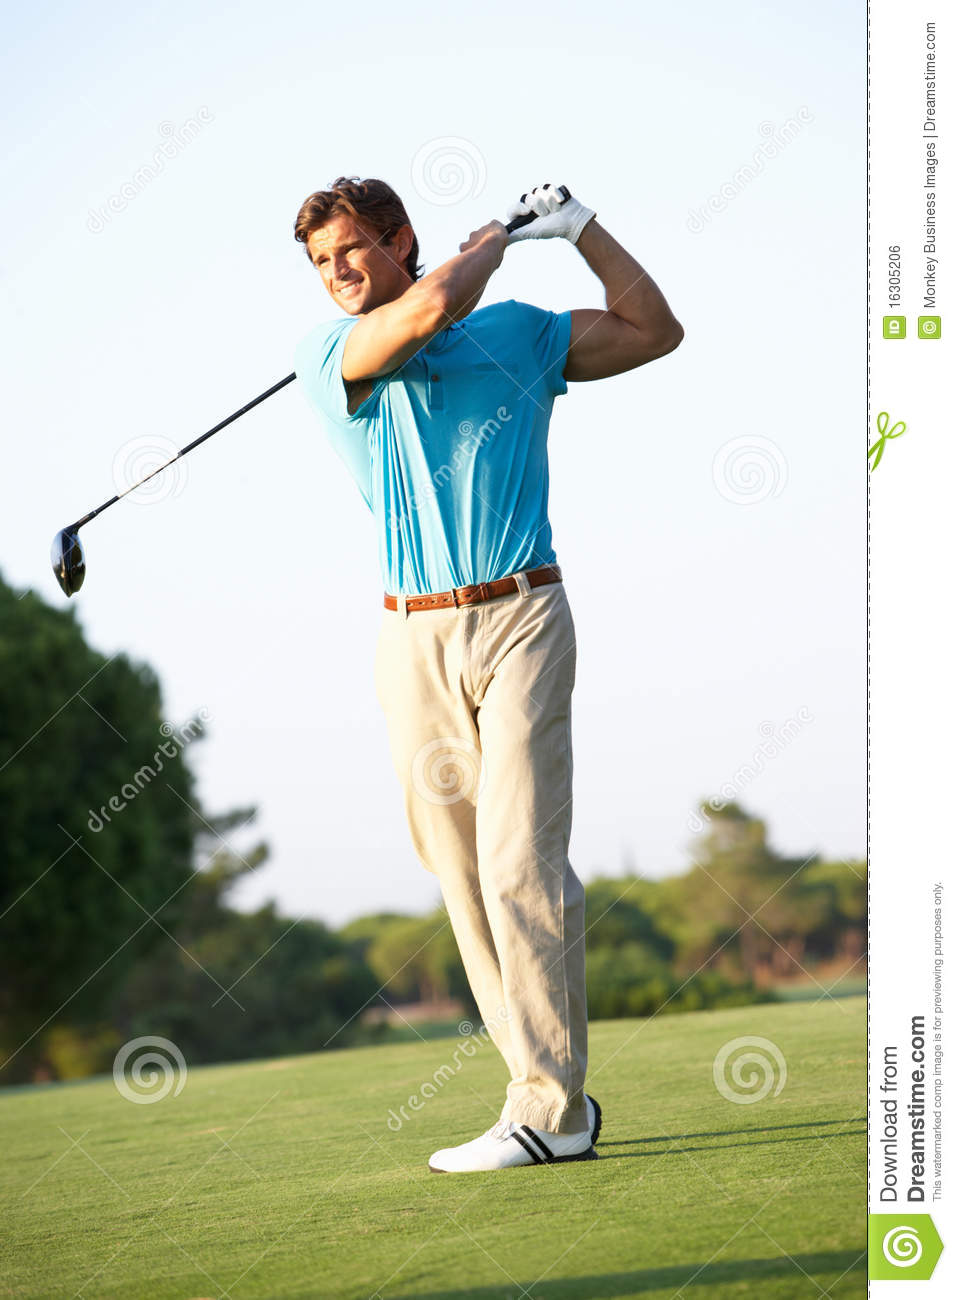 Male Golfer Teeing Off On Golf Course Royalty Free Stock Image - Image ...